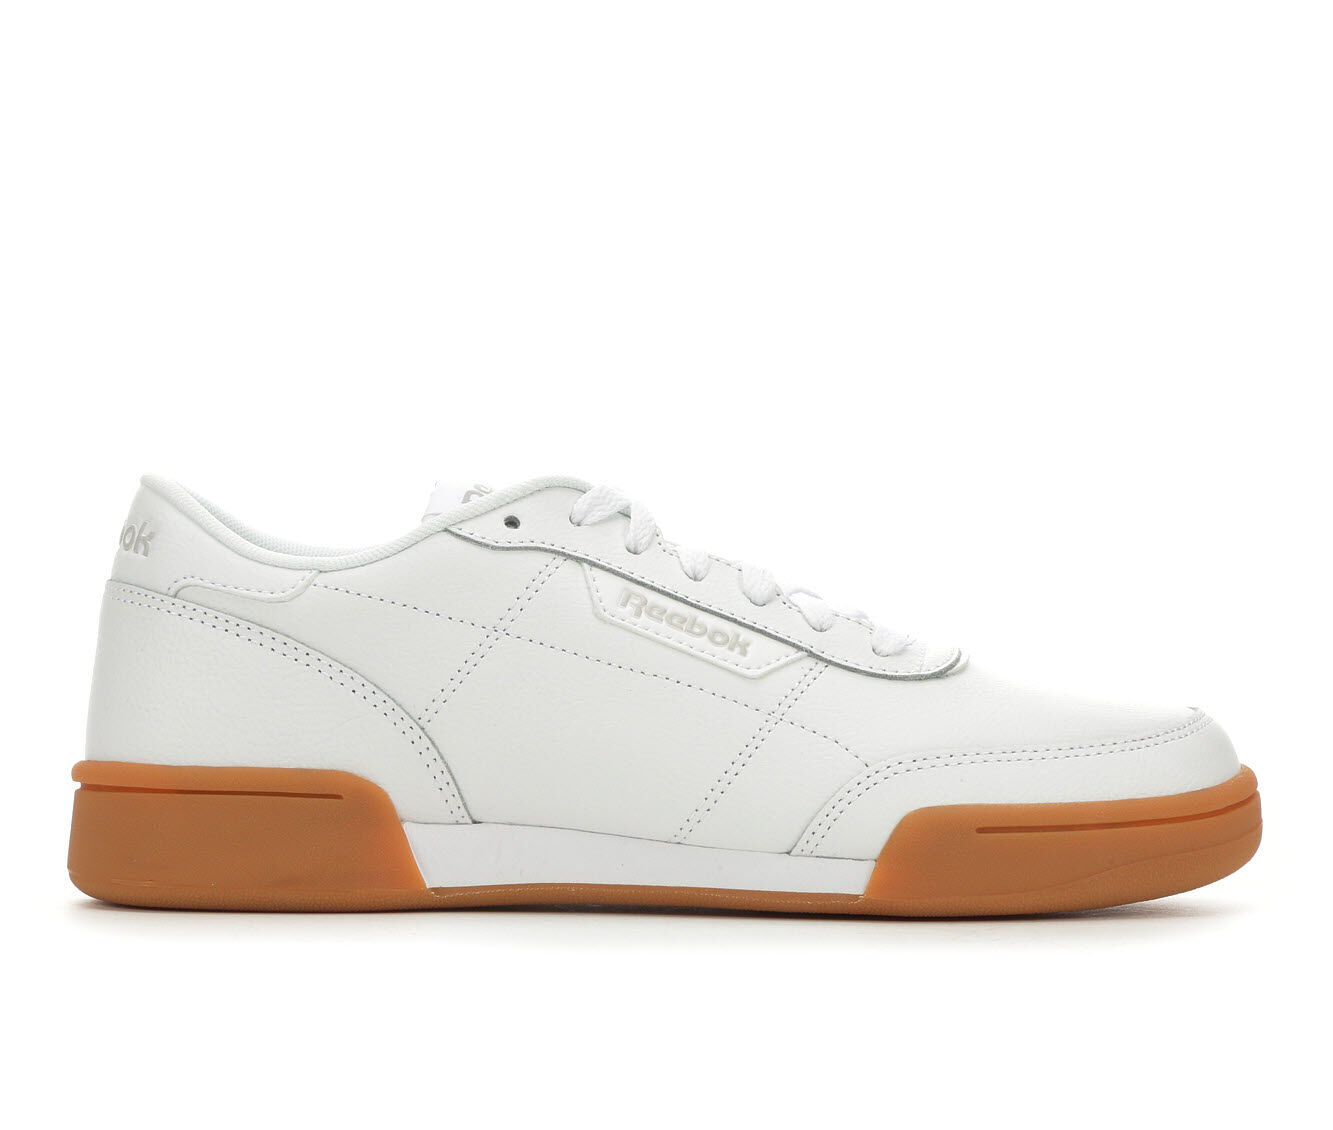 Men's Reebok Royal Heredis Tennis Shoes White/Gum